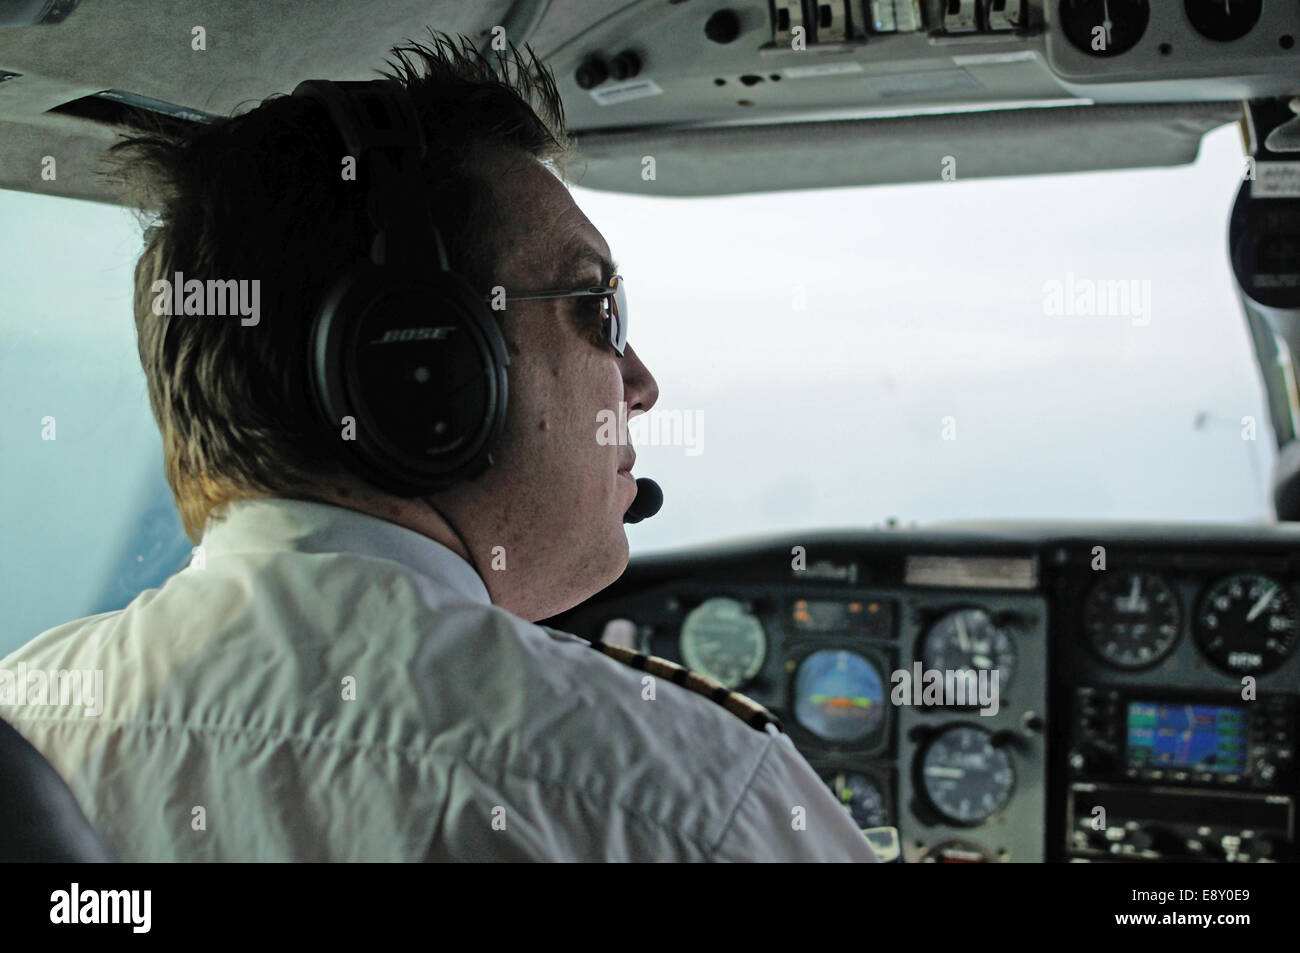 A pilot at the controls of a Piper Chieftain twin-engined aircraft - Stock Image